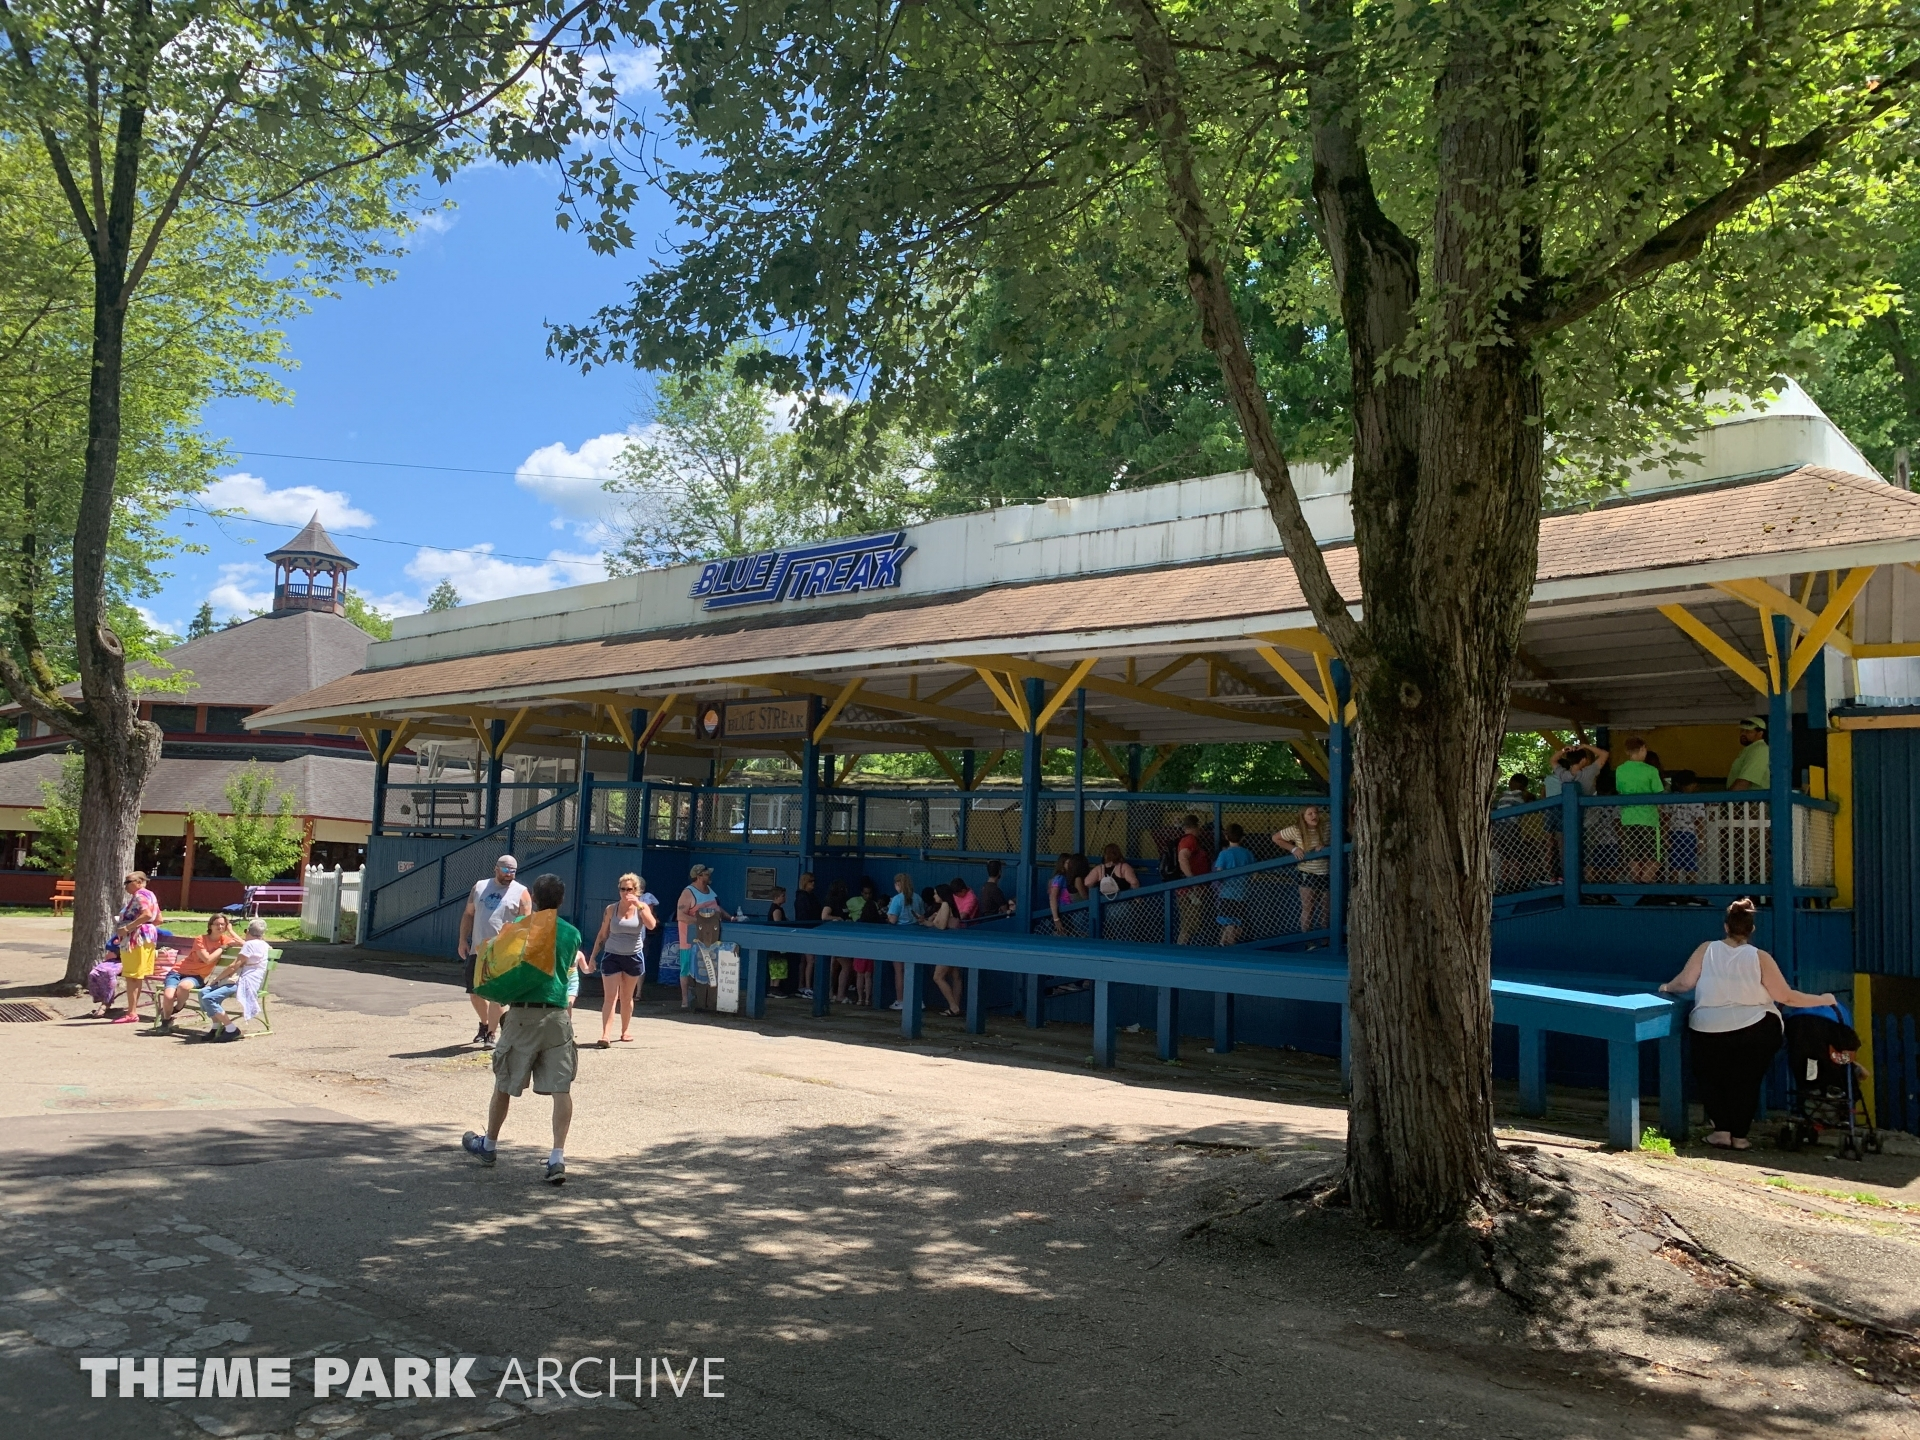 Blue Streak at Conneaut Lake Park